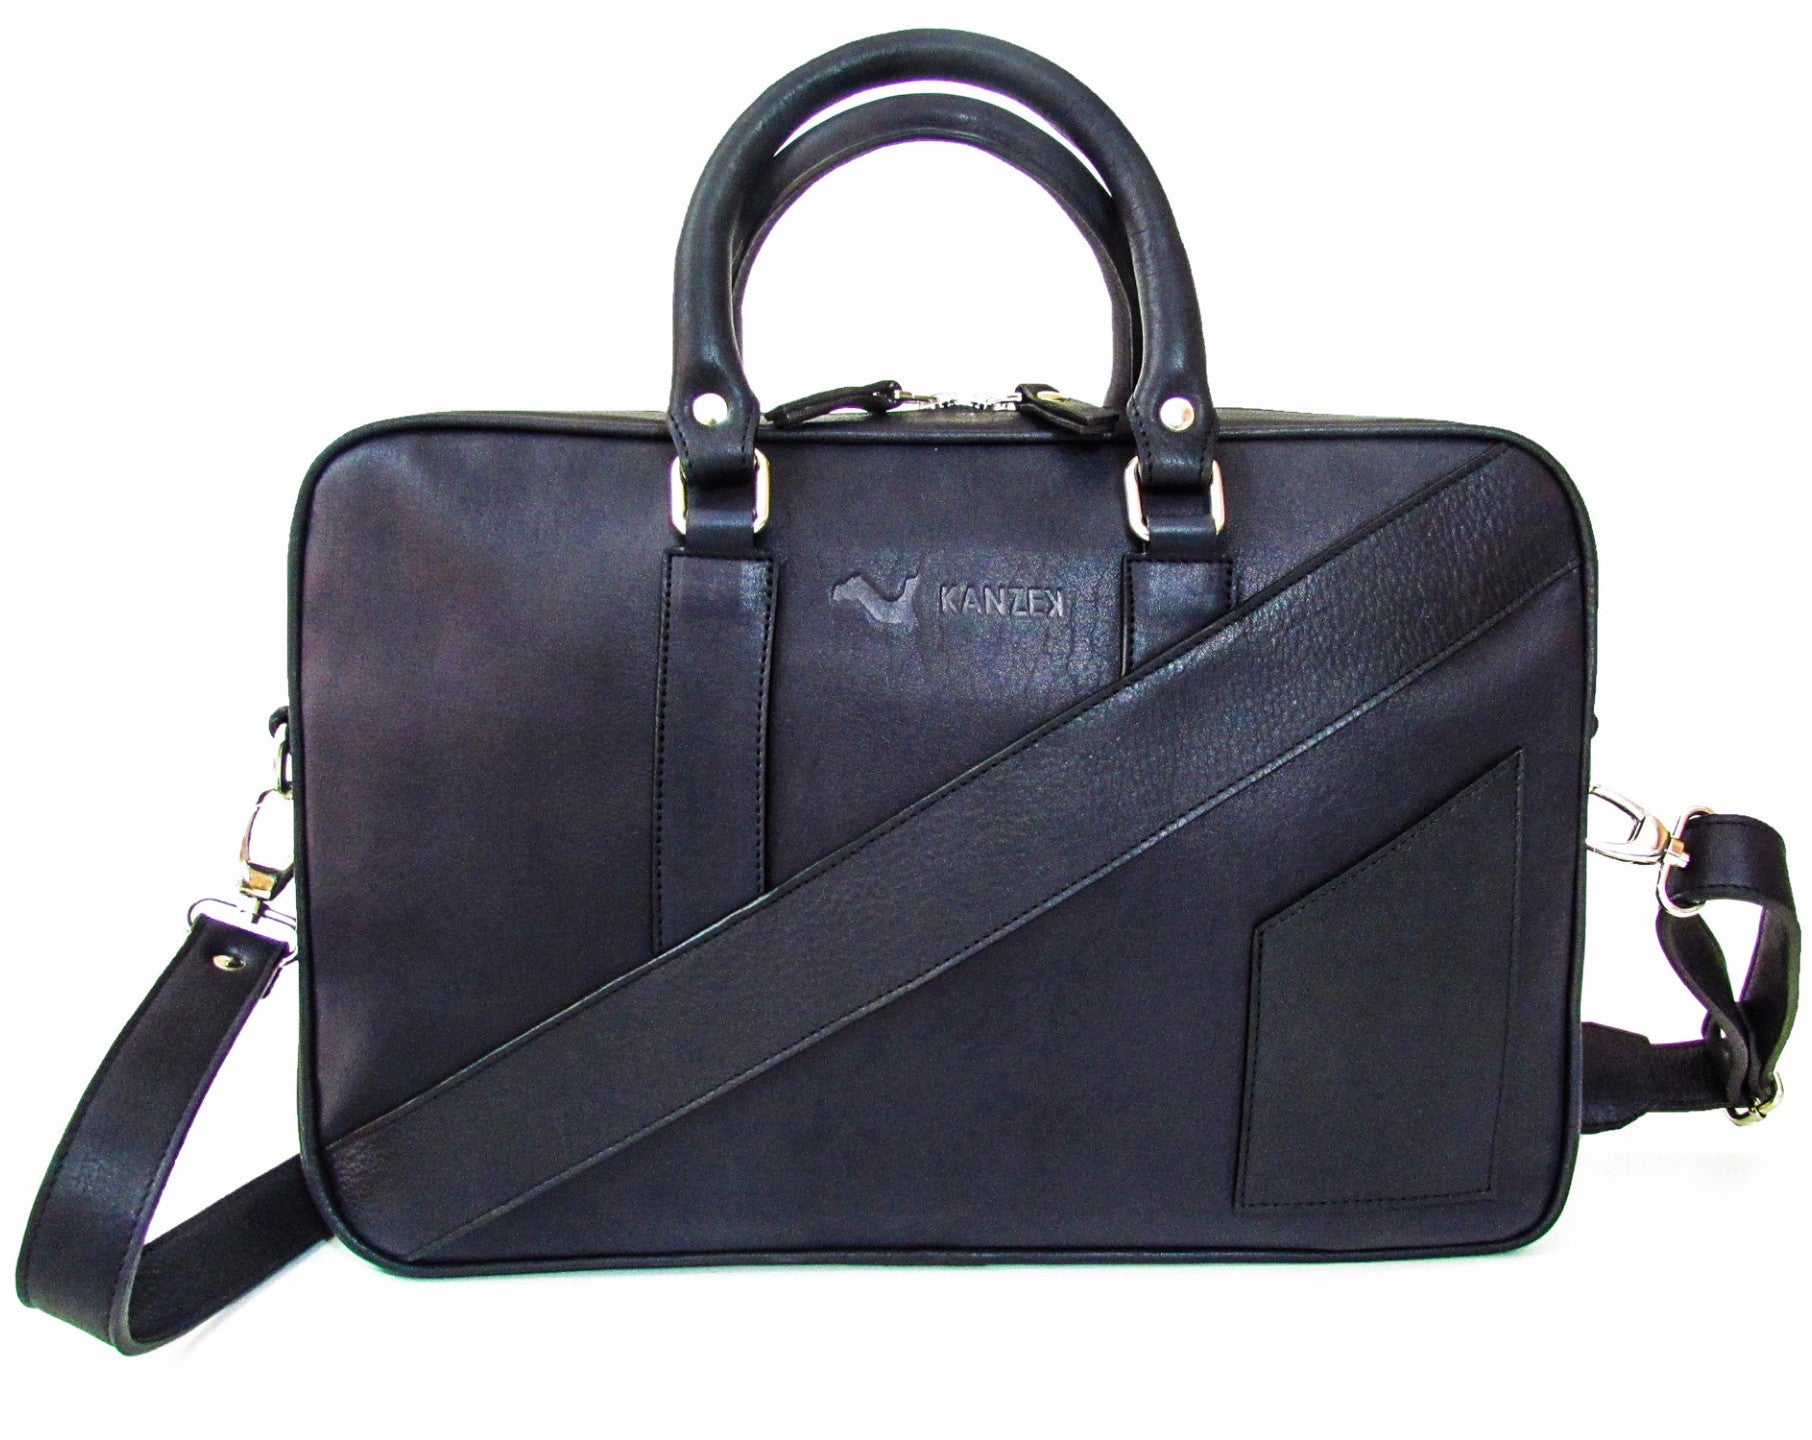 The Dollar Gent Briefcase in Dark Navy Blue has a beautiful original design